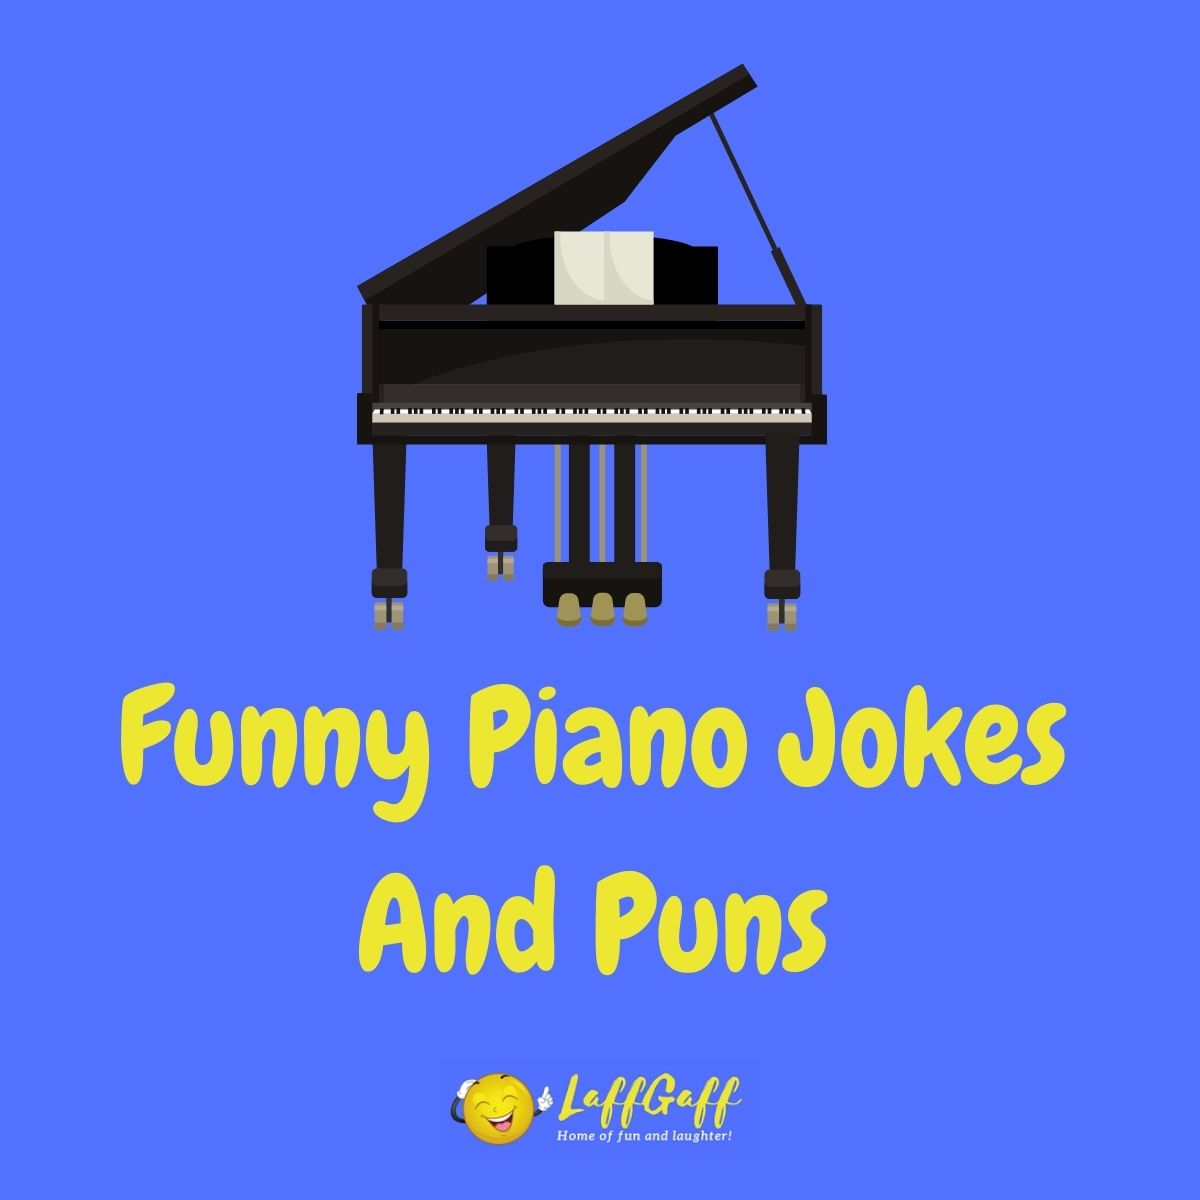 Featured image for a page of funny piano jokes and puns.